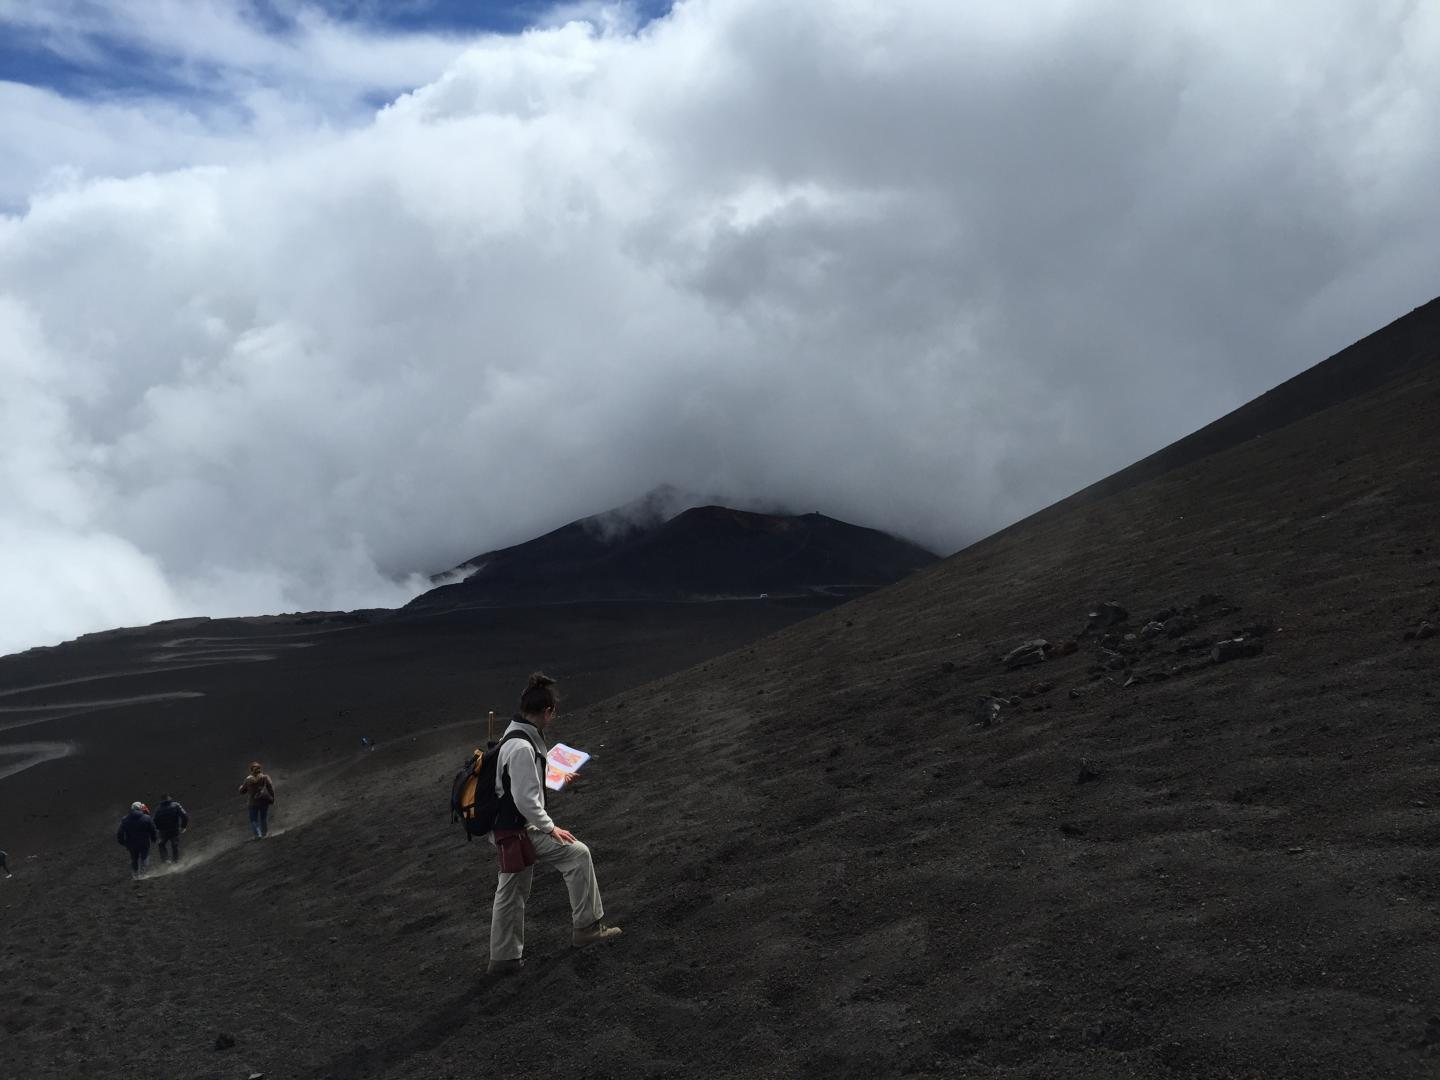 Mount Etna research